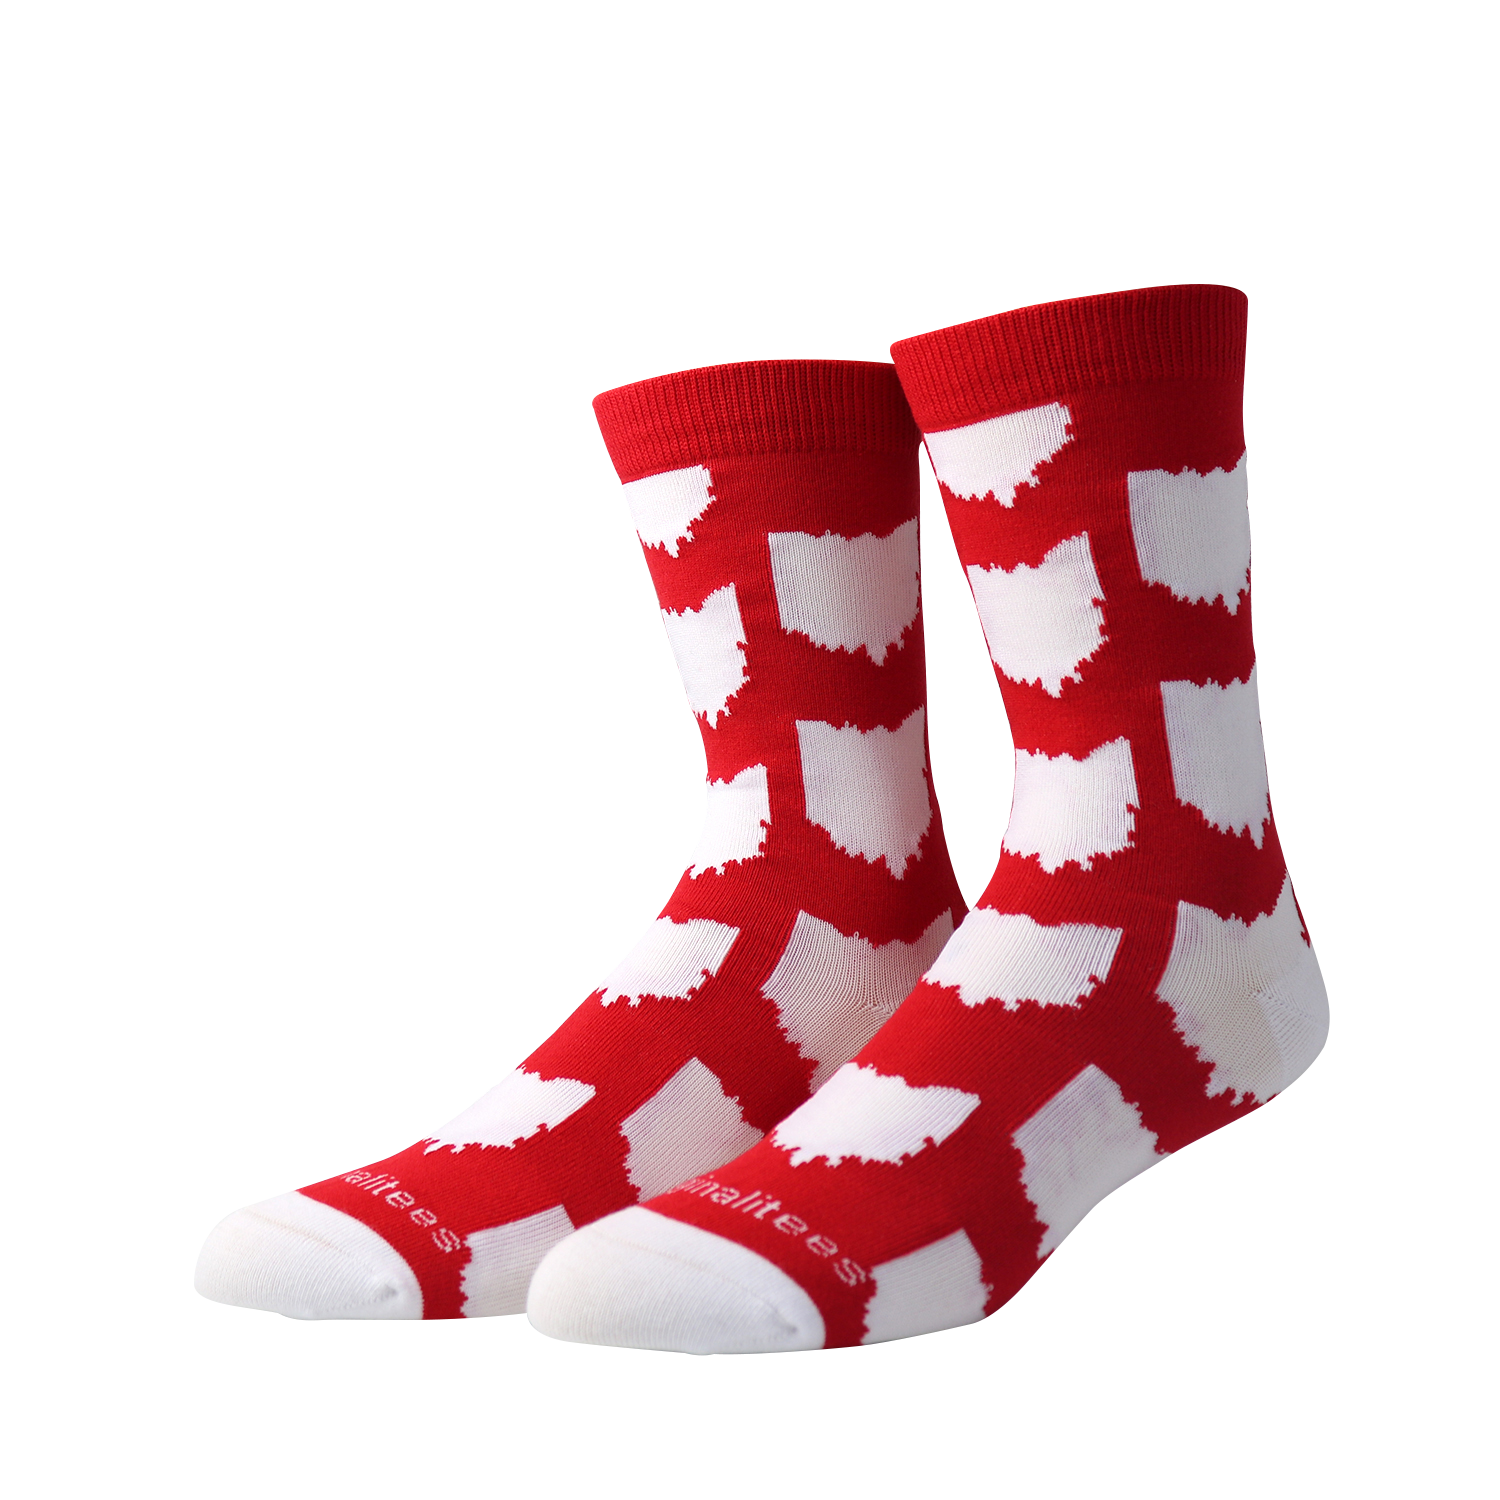 All Over OH Socks - Red/White